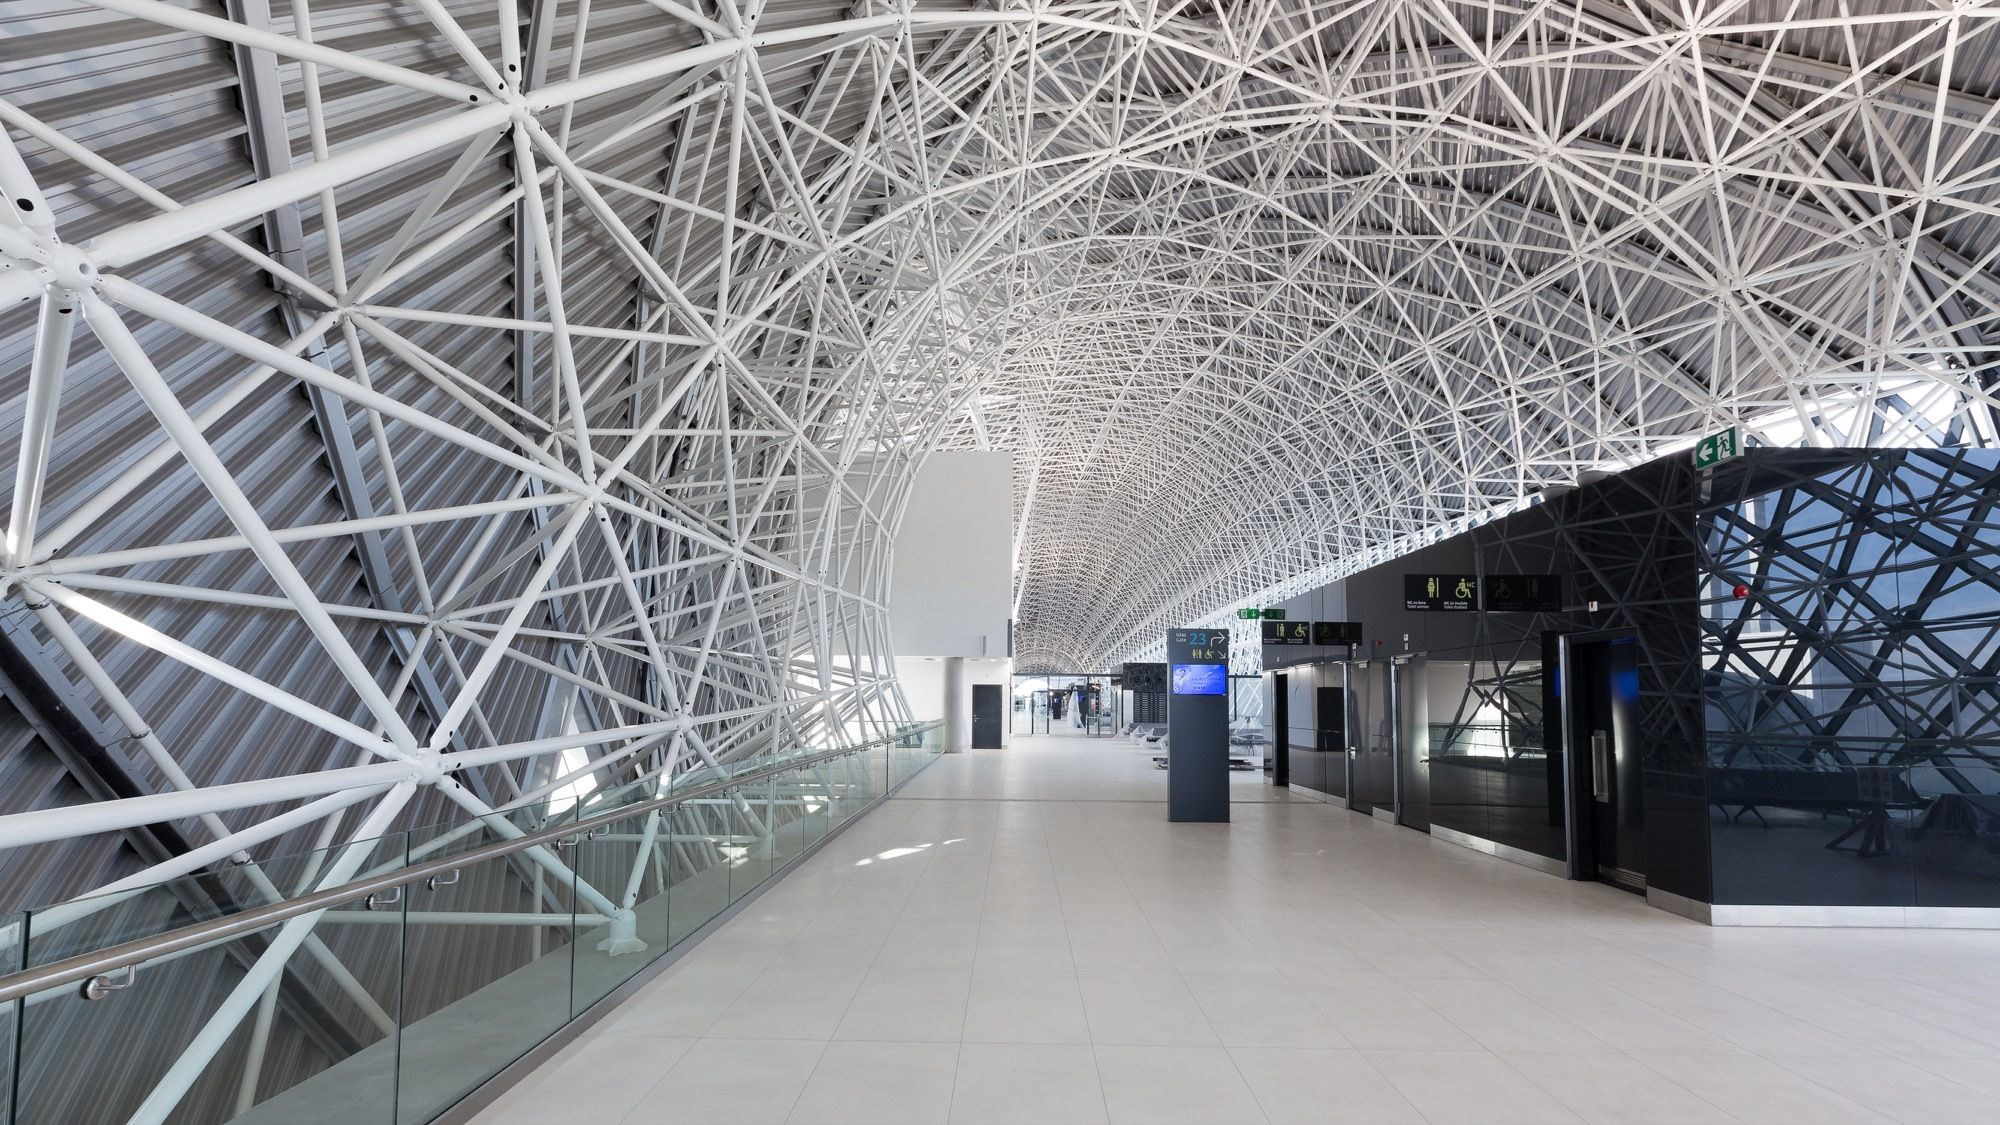 Image 1 Of 31 From Gallery Of Zagreb Airport X2f Kincl Neidhardt Institut Igh Photograph By Josip Skof Architecture Landmark Zagreb Architecture